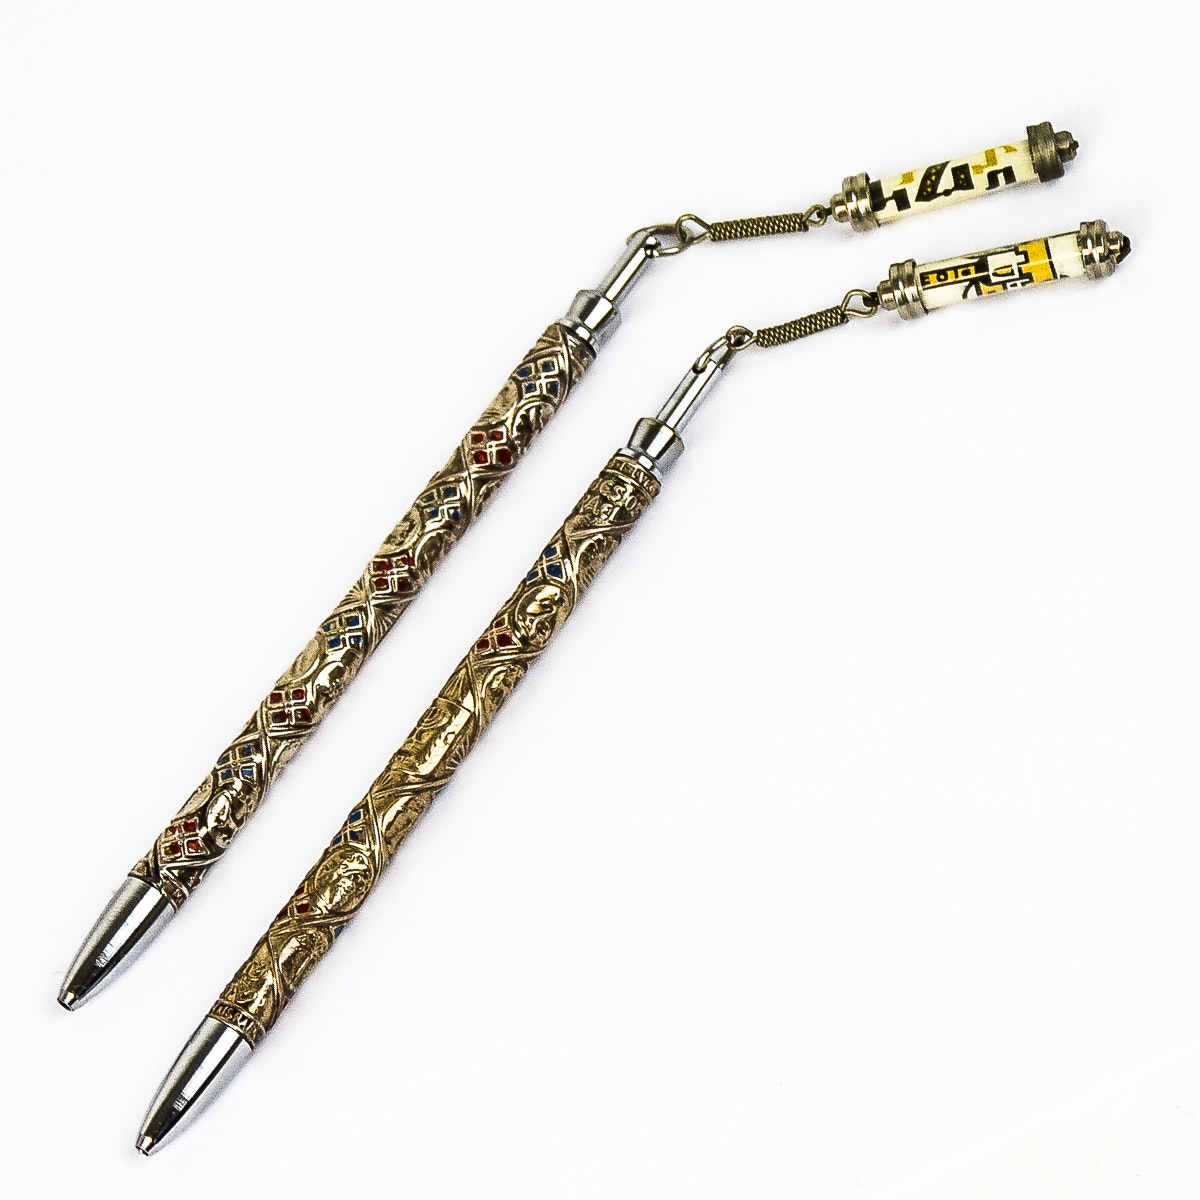 Pair of Vintage Tribes of Israel Sterling Silver Pens By Rolex